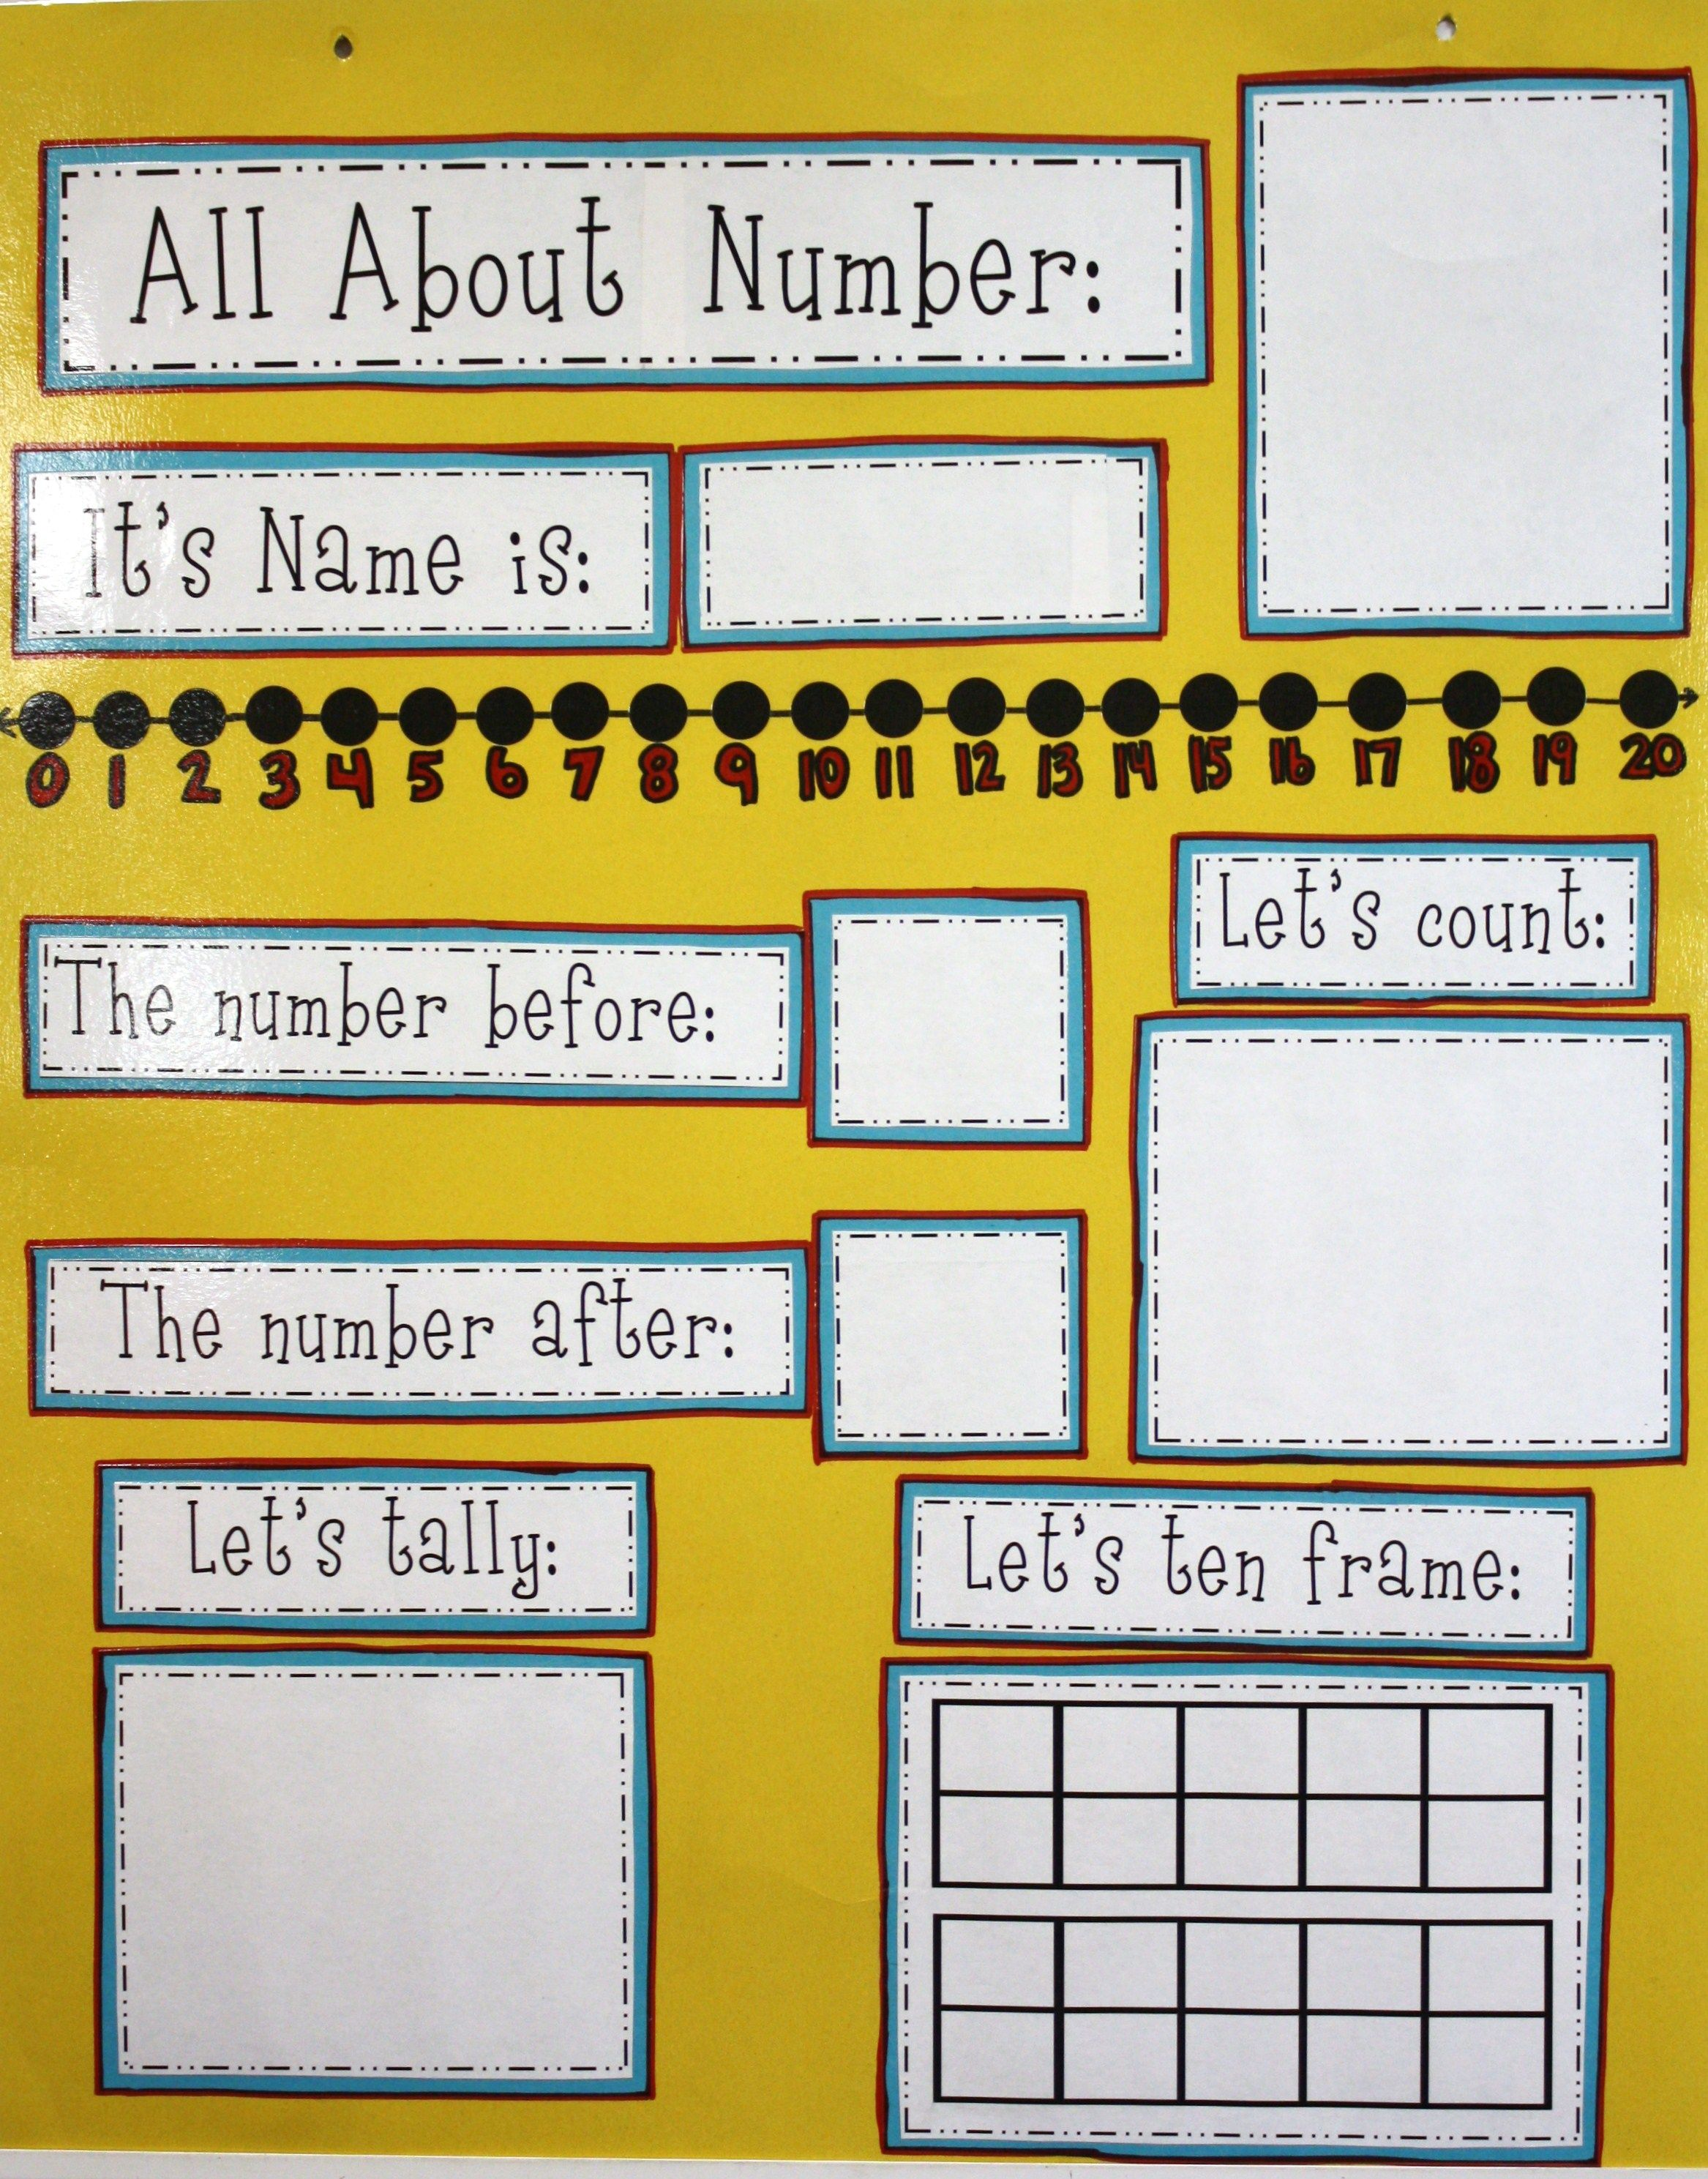 All About Number Poster Add Expanded Form 10 Less 10 More